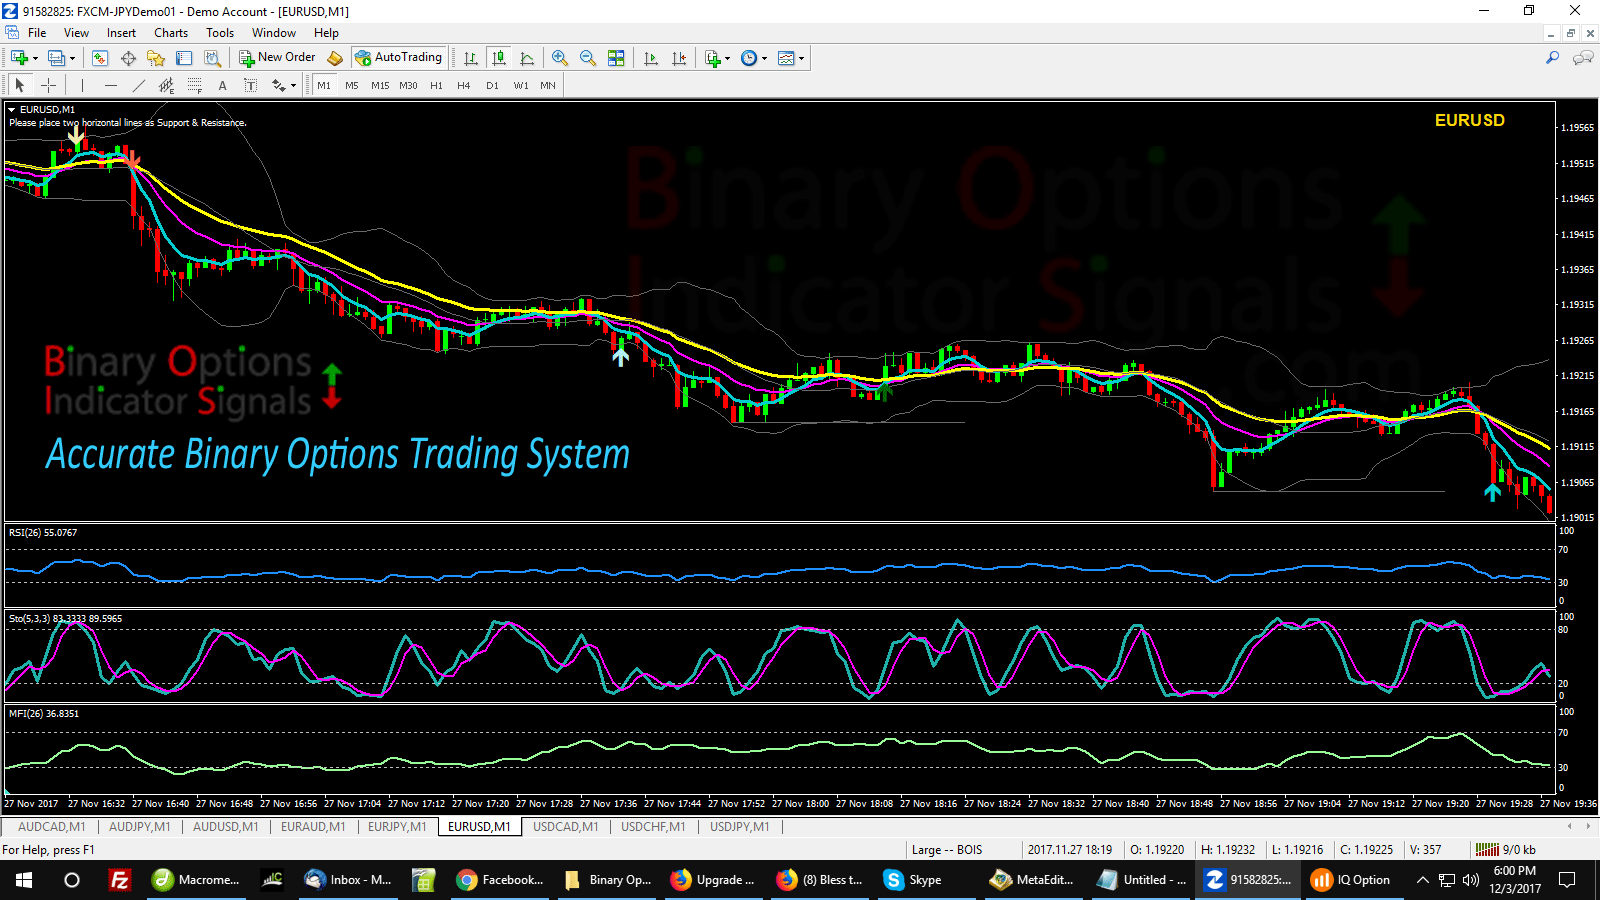 Binary options trading company